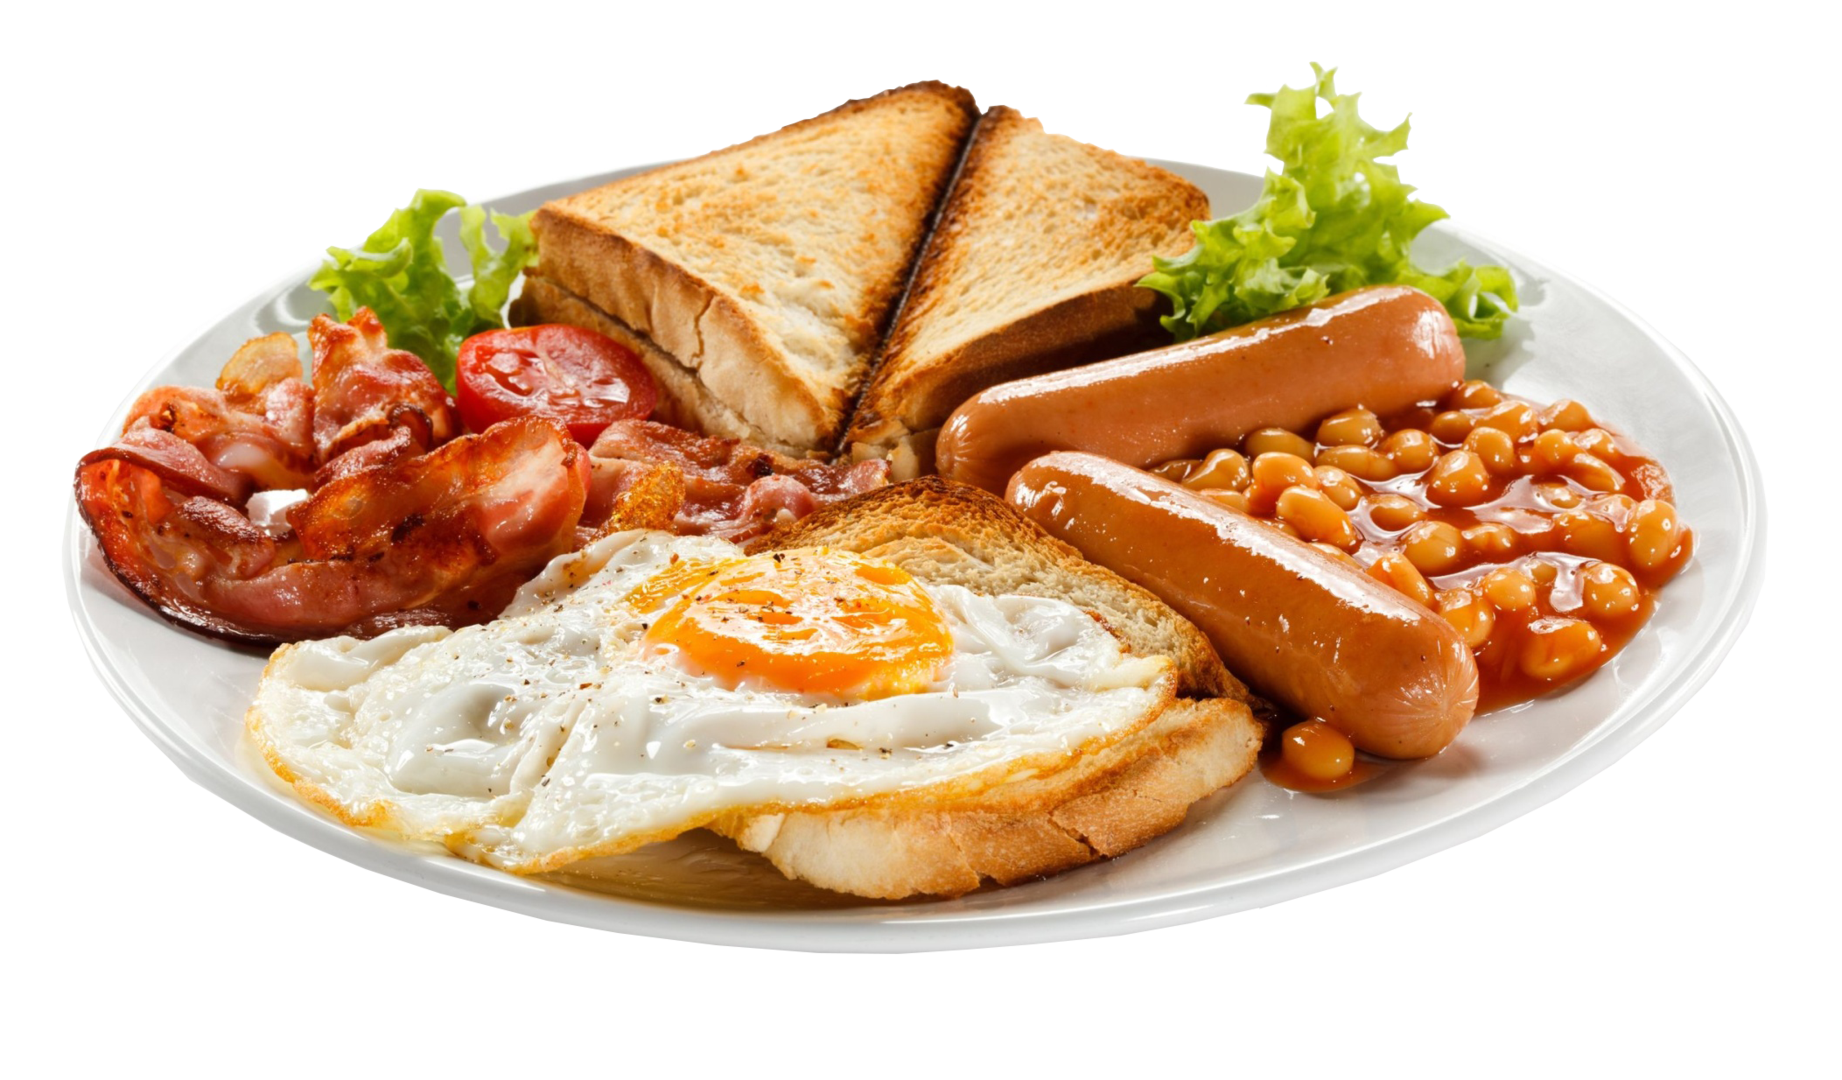 Breakfast Png & Free Breakfast.png Transparent Images ...